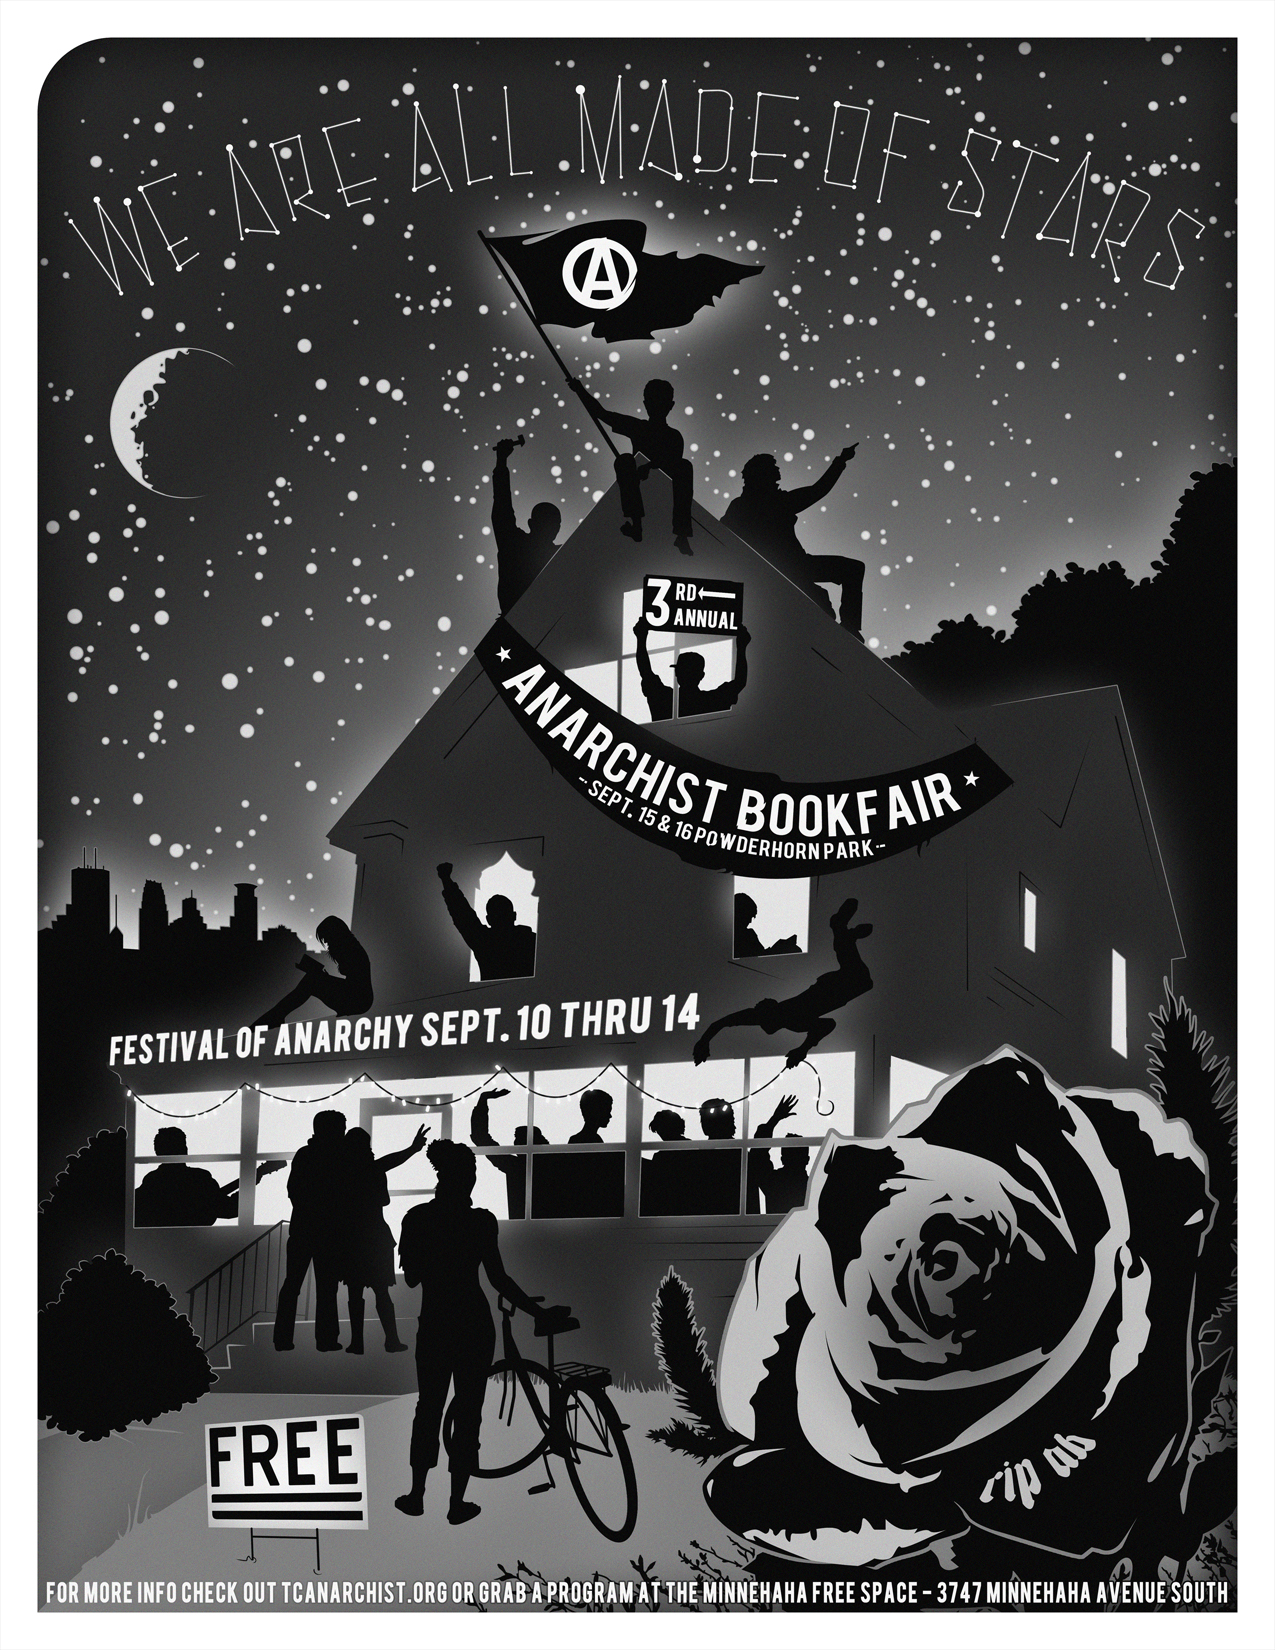 Twin Cities Anarchist Bookfair